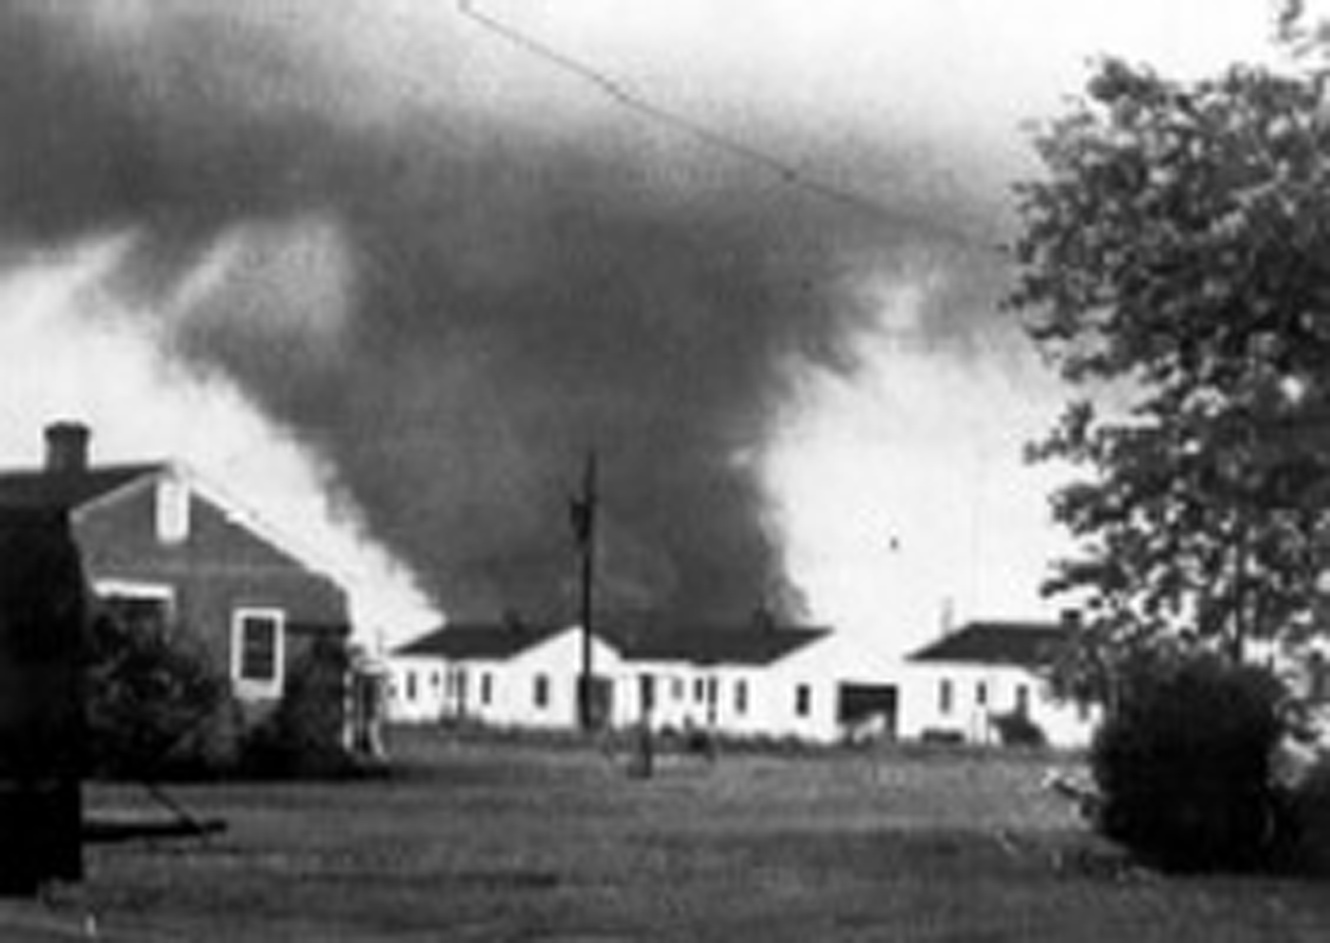 A tornado strikes Middle Georgia and Robins Air Force Base onAPril 30, 1953.